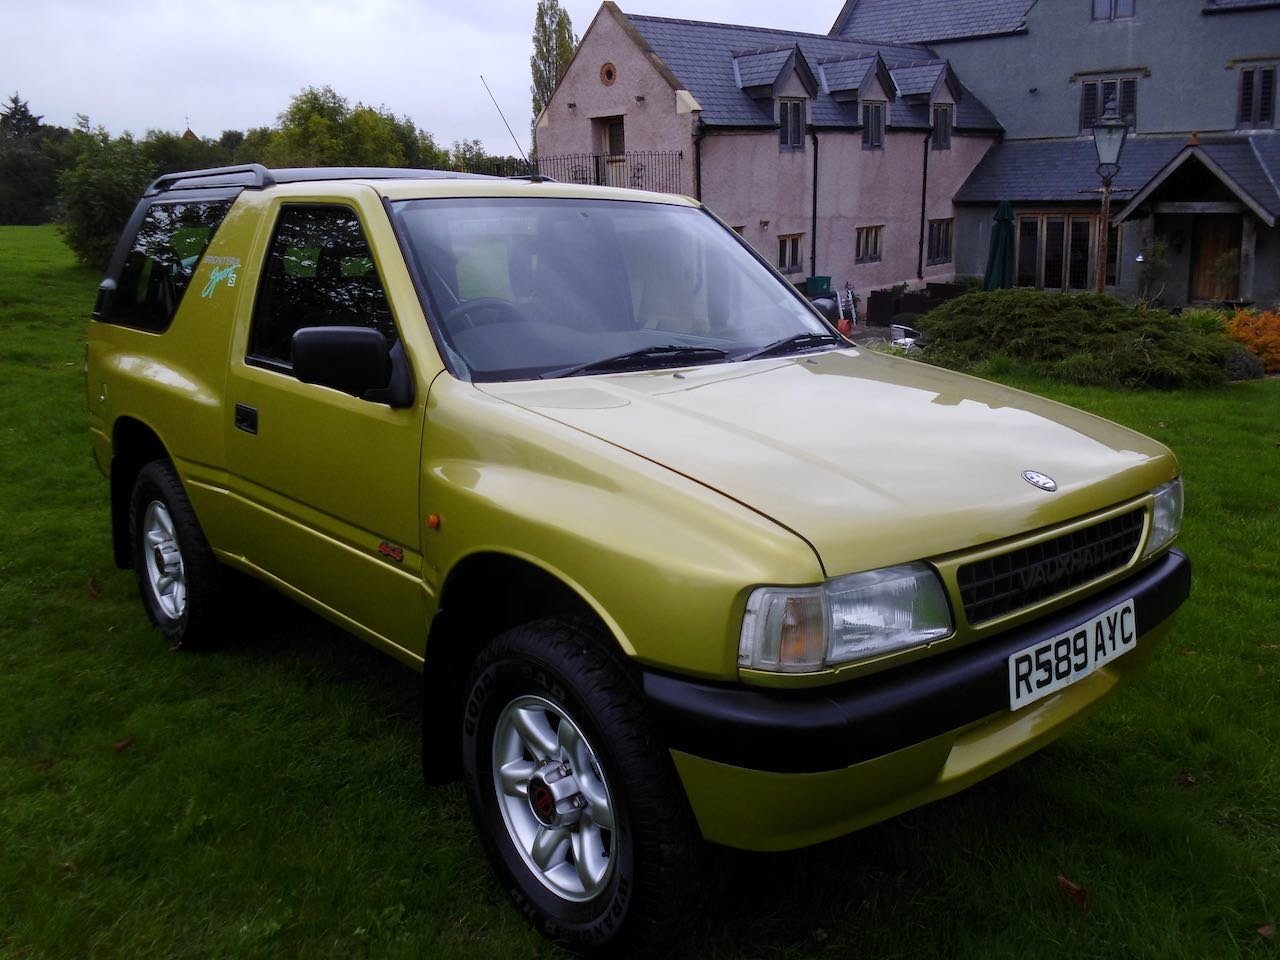 1997 Vauxhall Frontera sport S For Sale (picture 1 of 6)